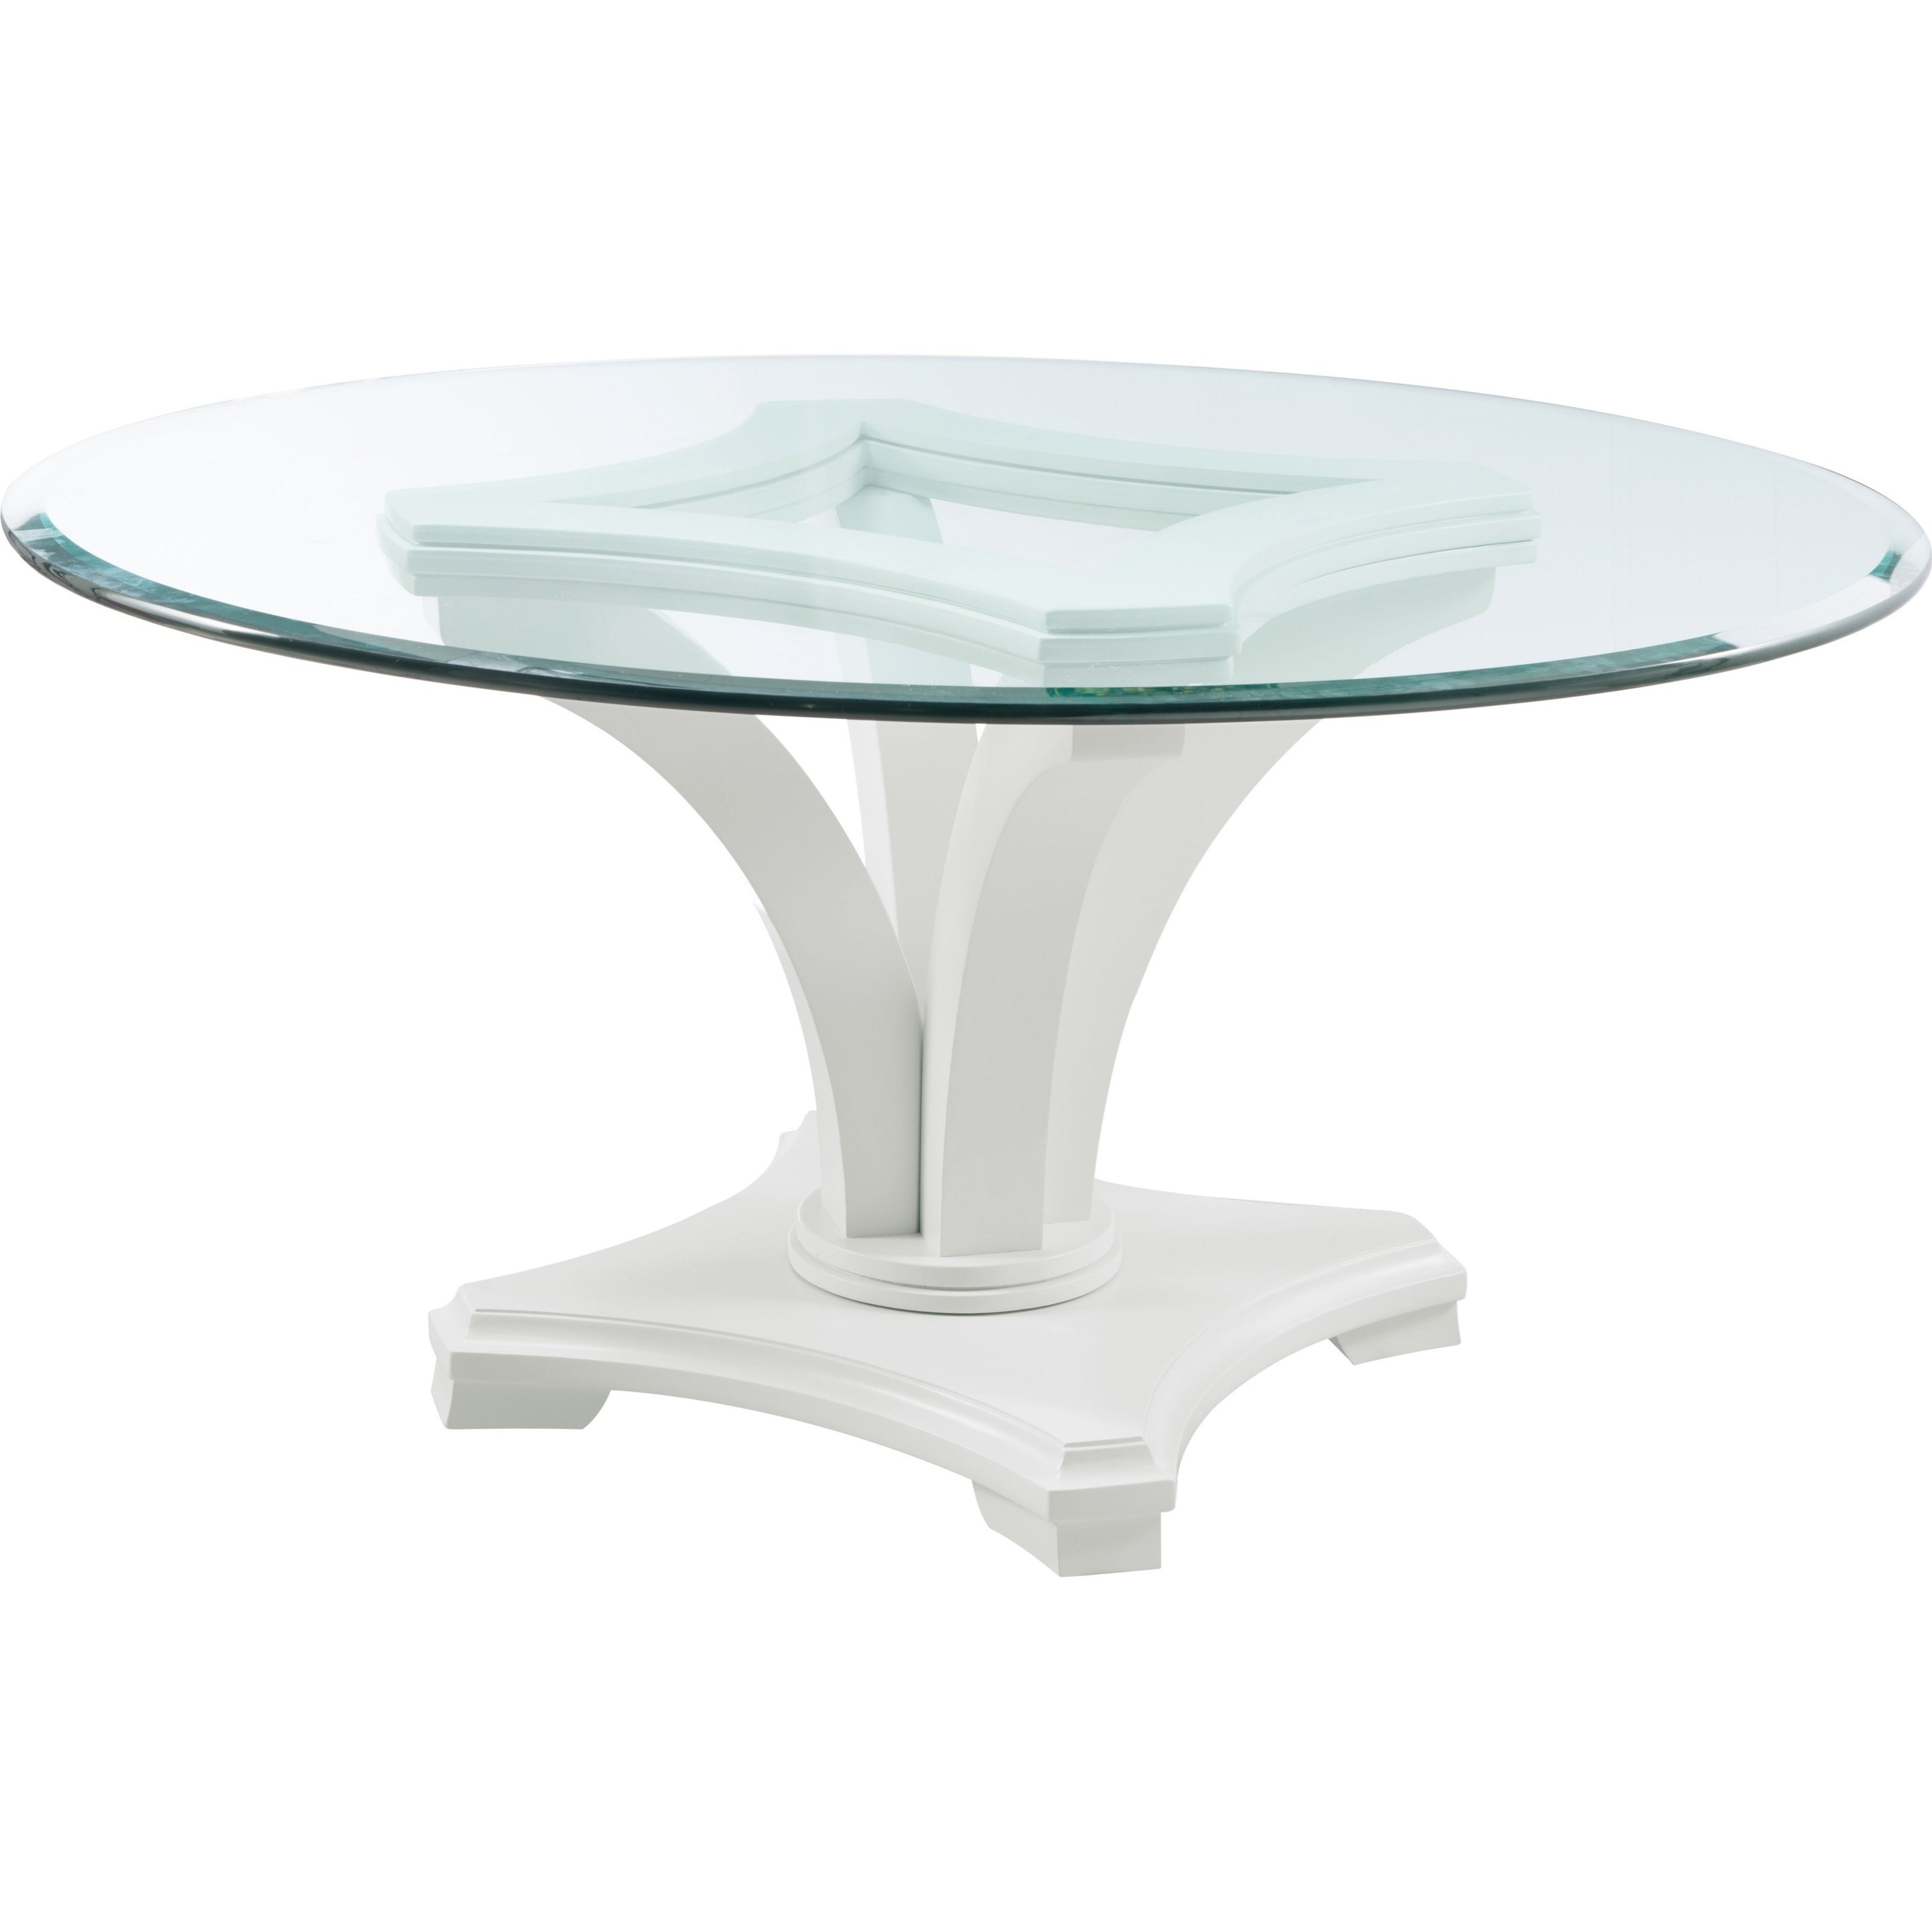 Manuscript Contemporary Round Dining Table With Glass Top By Thomasville®  At Baeru0027s Furniture